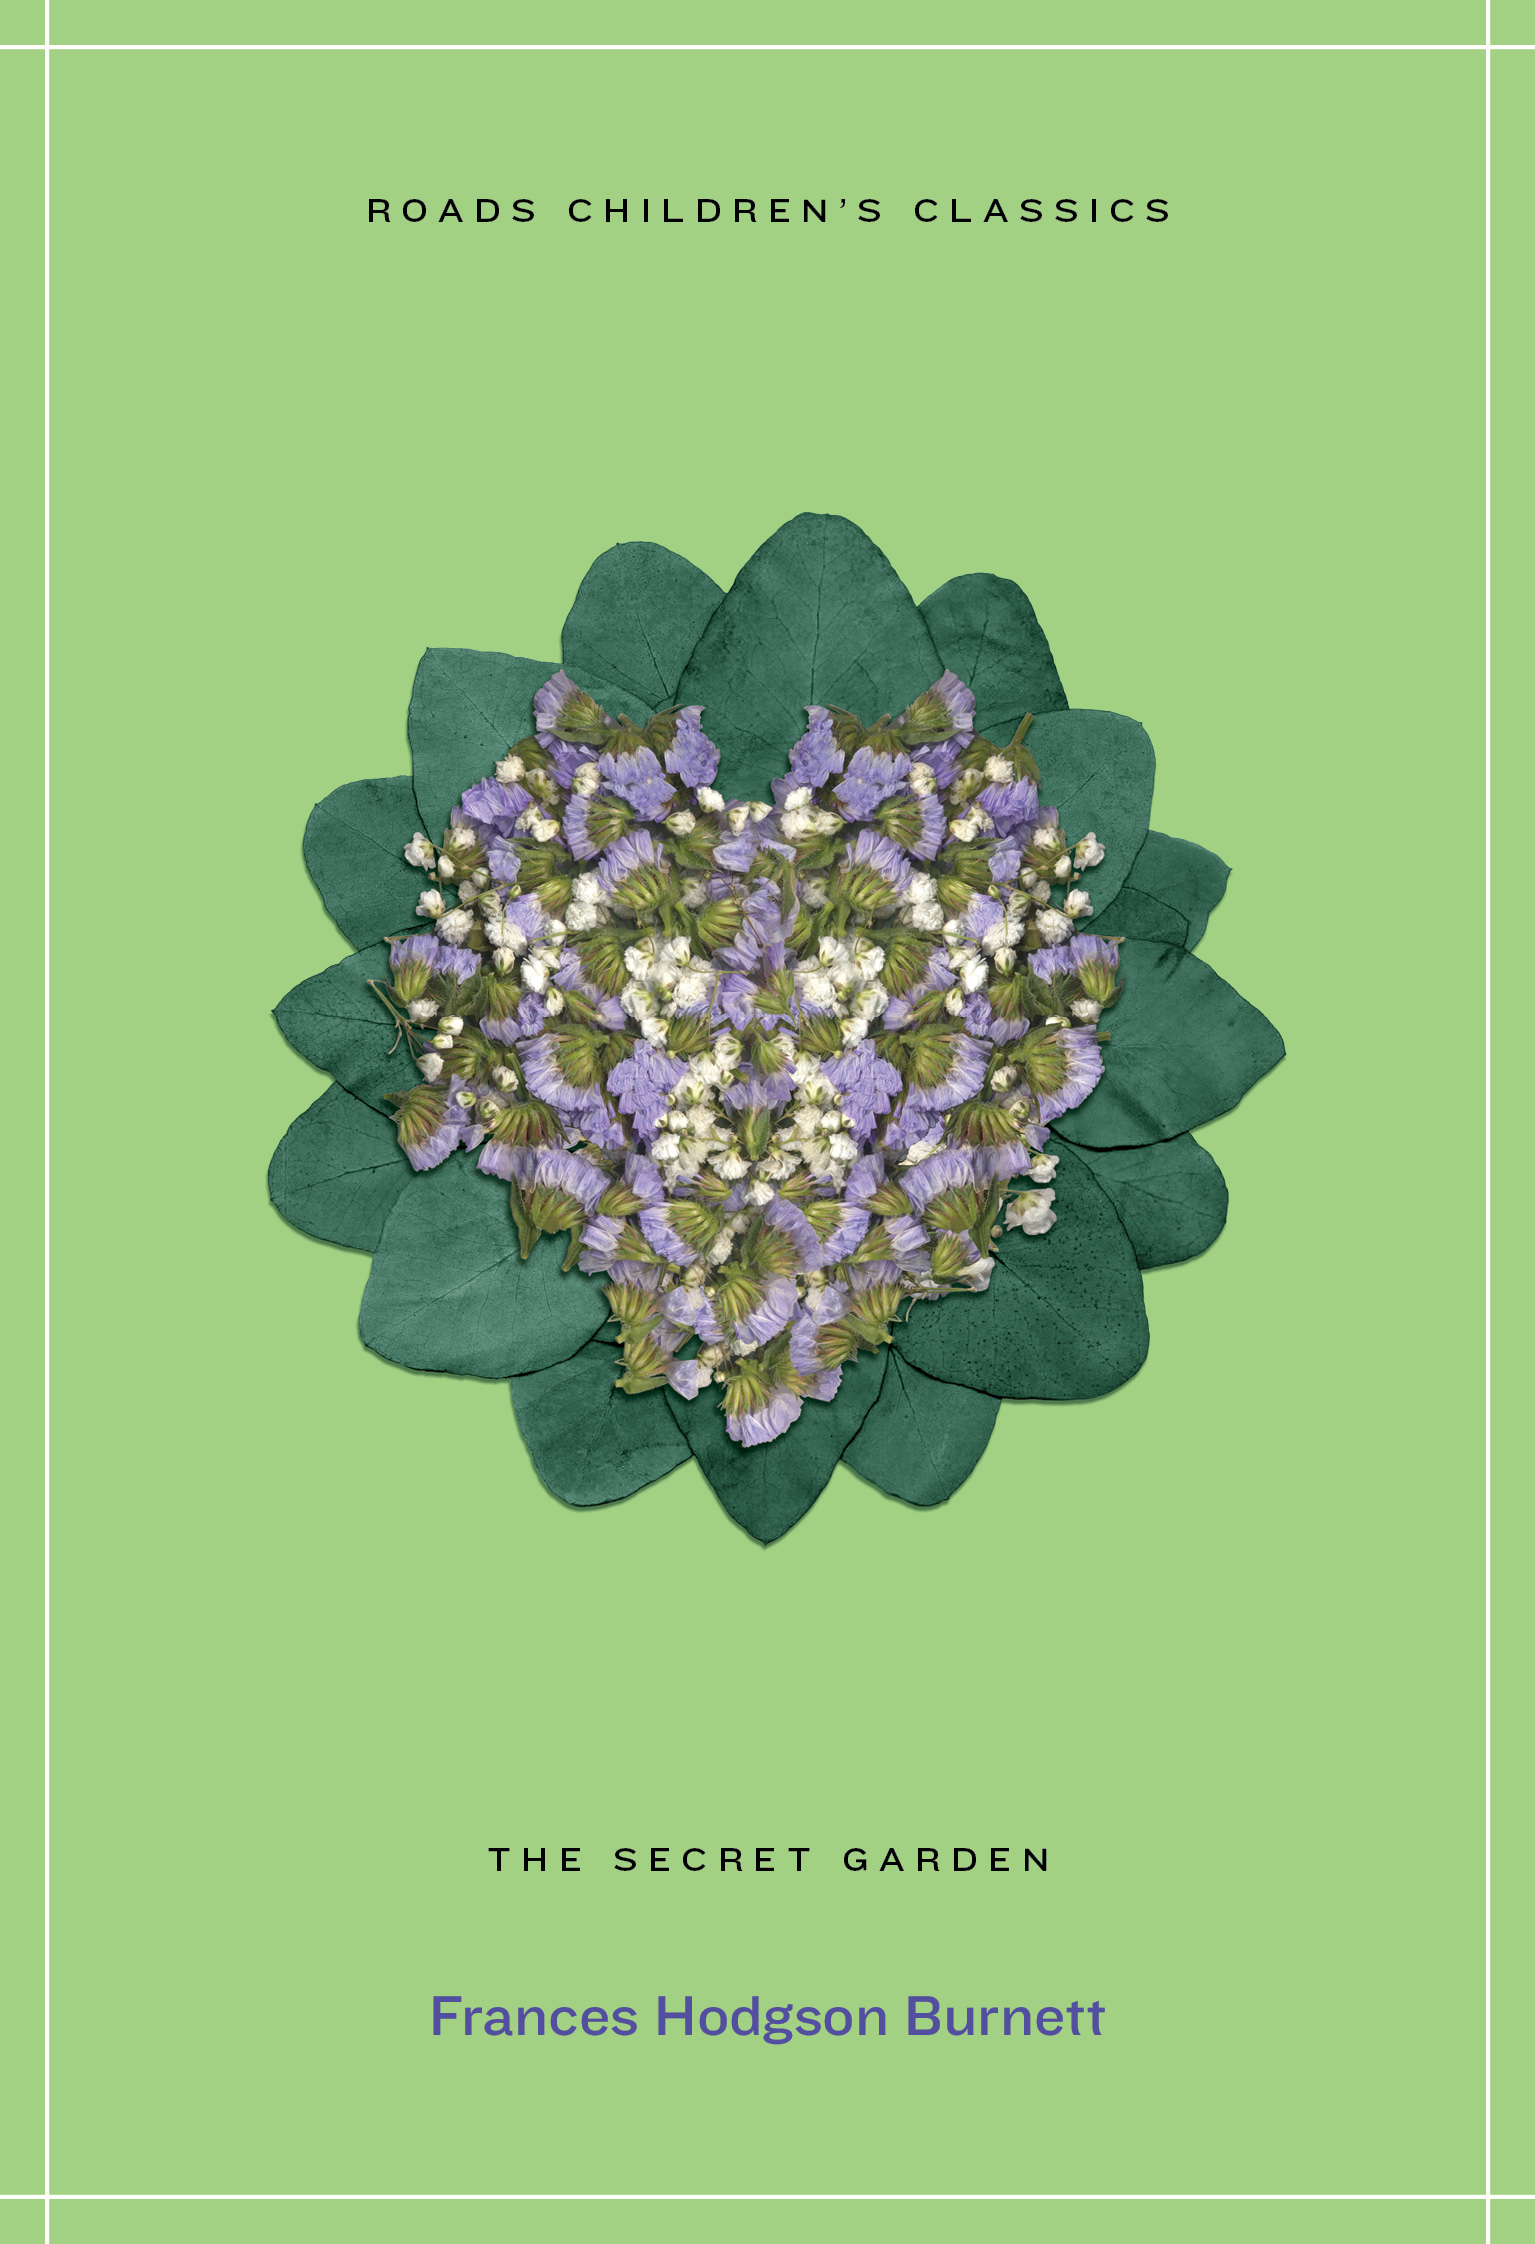 Cover image: The Secret Garden